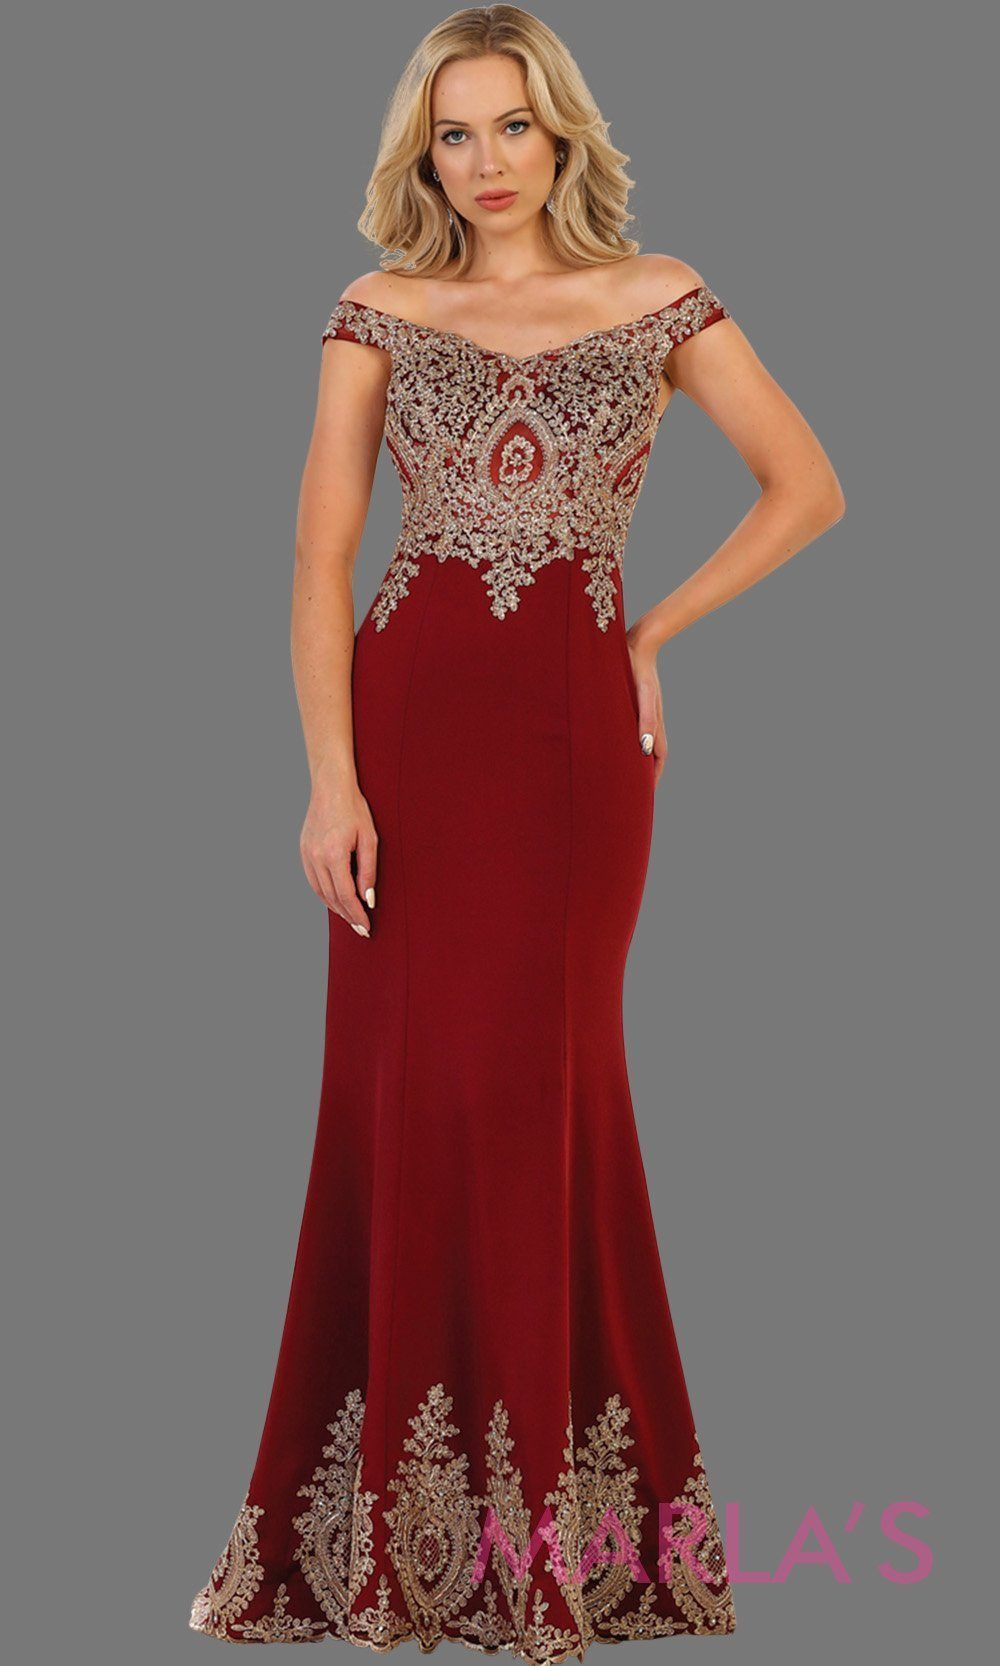 167238f9d0d Long off shoulder burgundy fitted dress with gold lace. It has a train with  gold lace trim. Perfect for prom